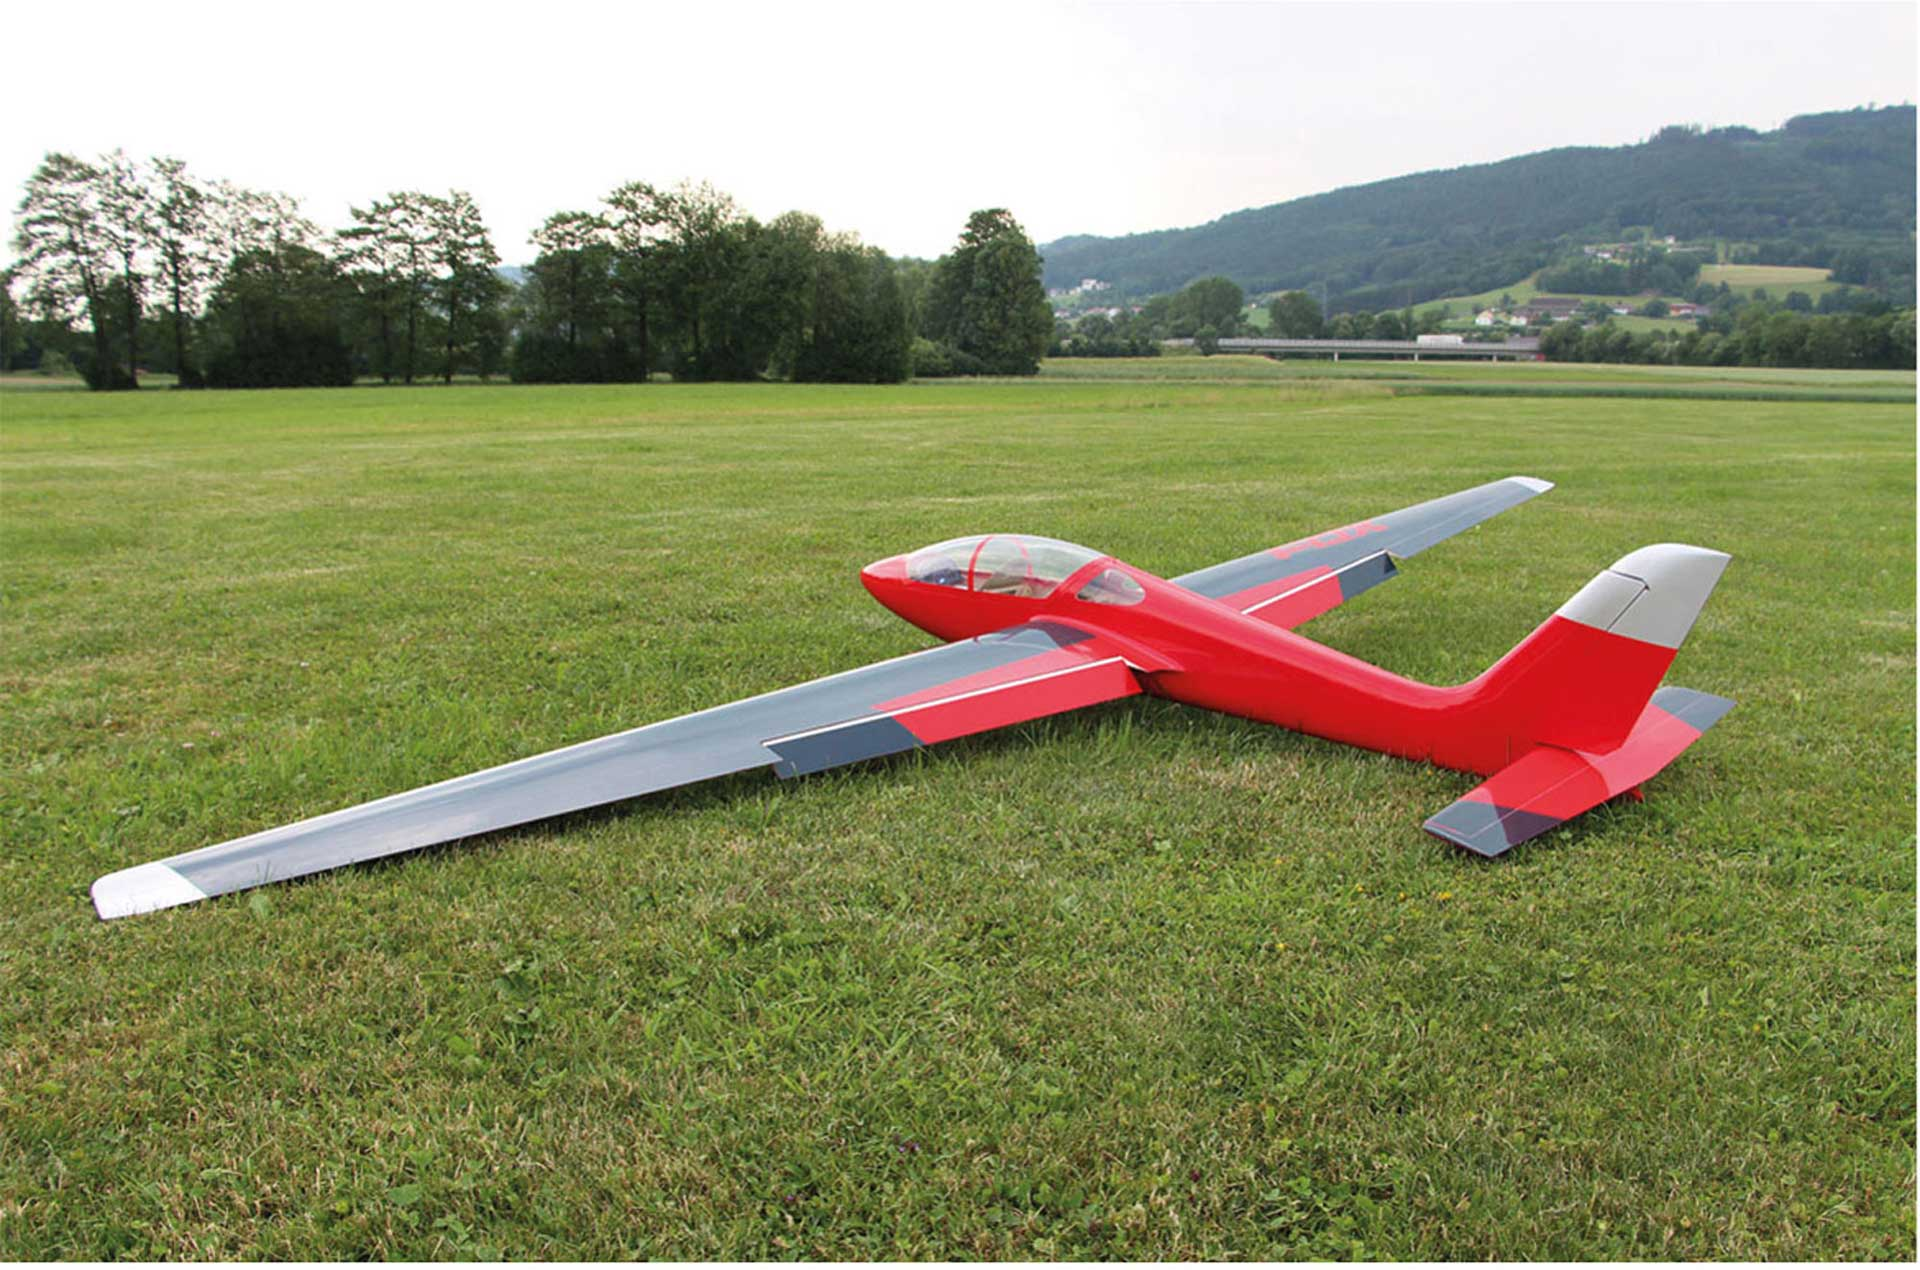 Robbe Modellsport MDM-1 FOX 3.5 M FULL COMPOSITE PNP ACROBATIC ELECTRIC GLIDER